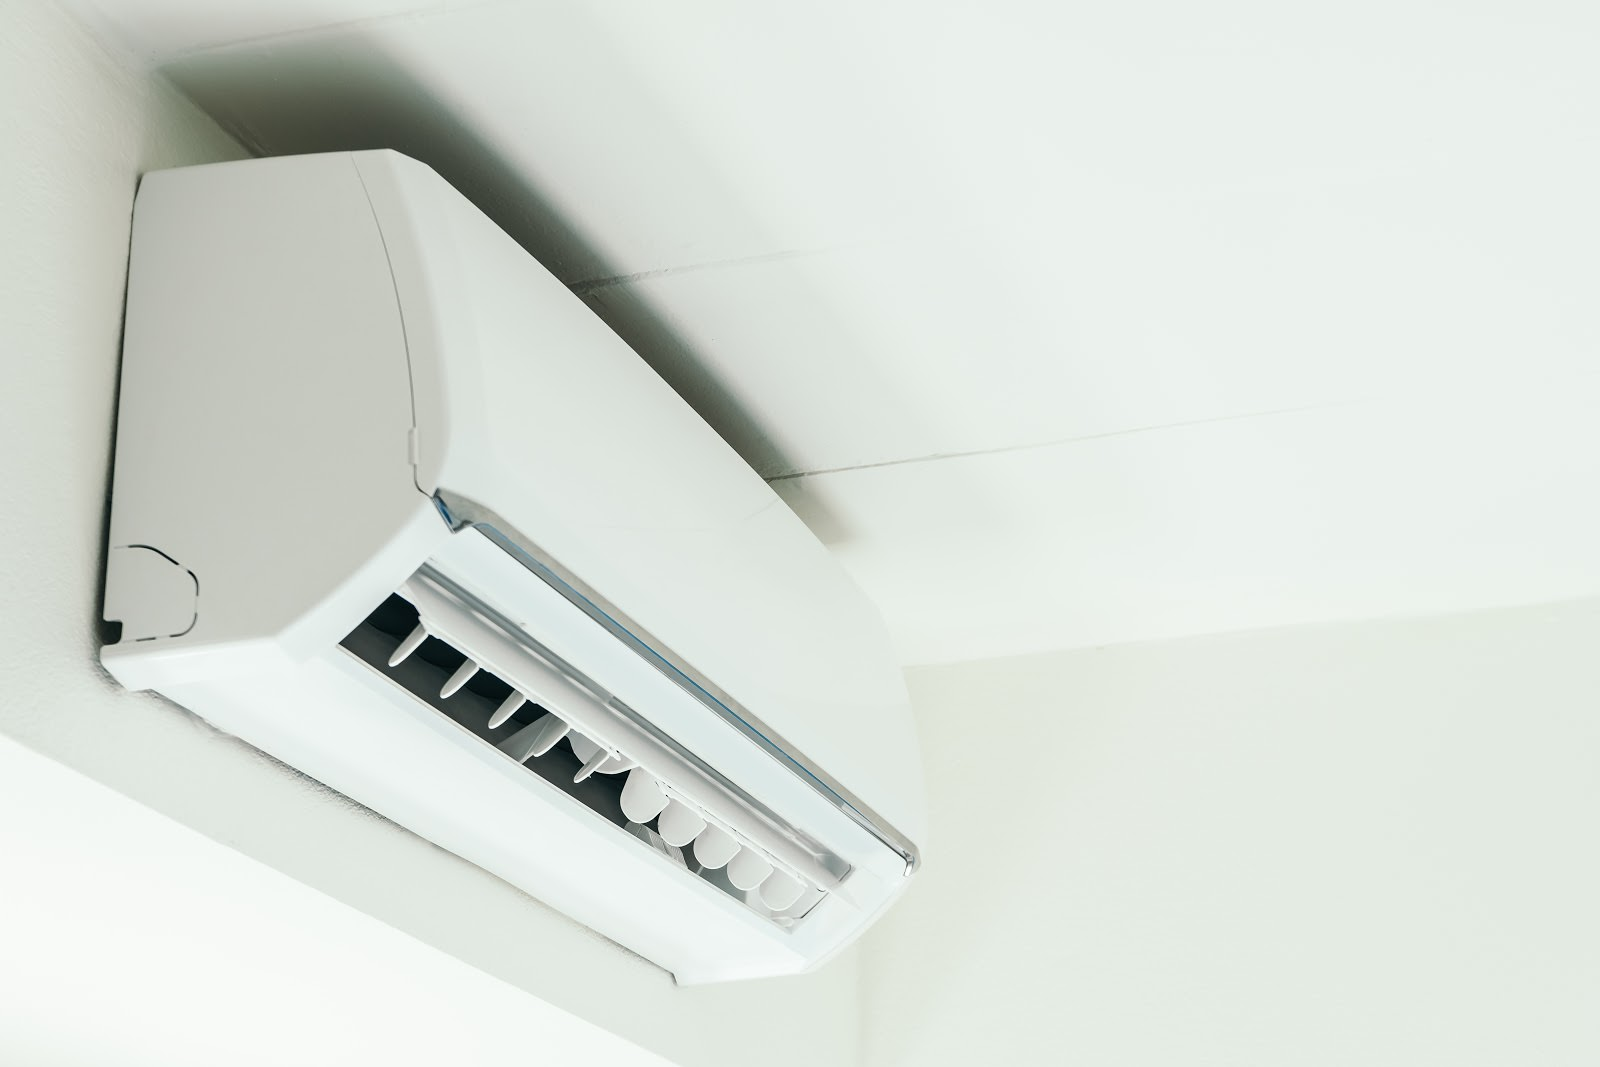 How Much Does it Cost to Install a Split System Air Conditioning?